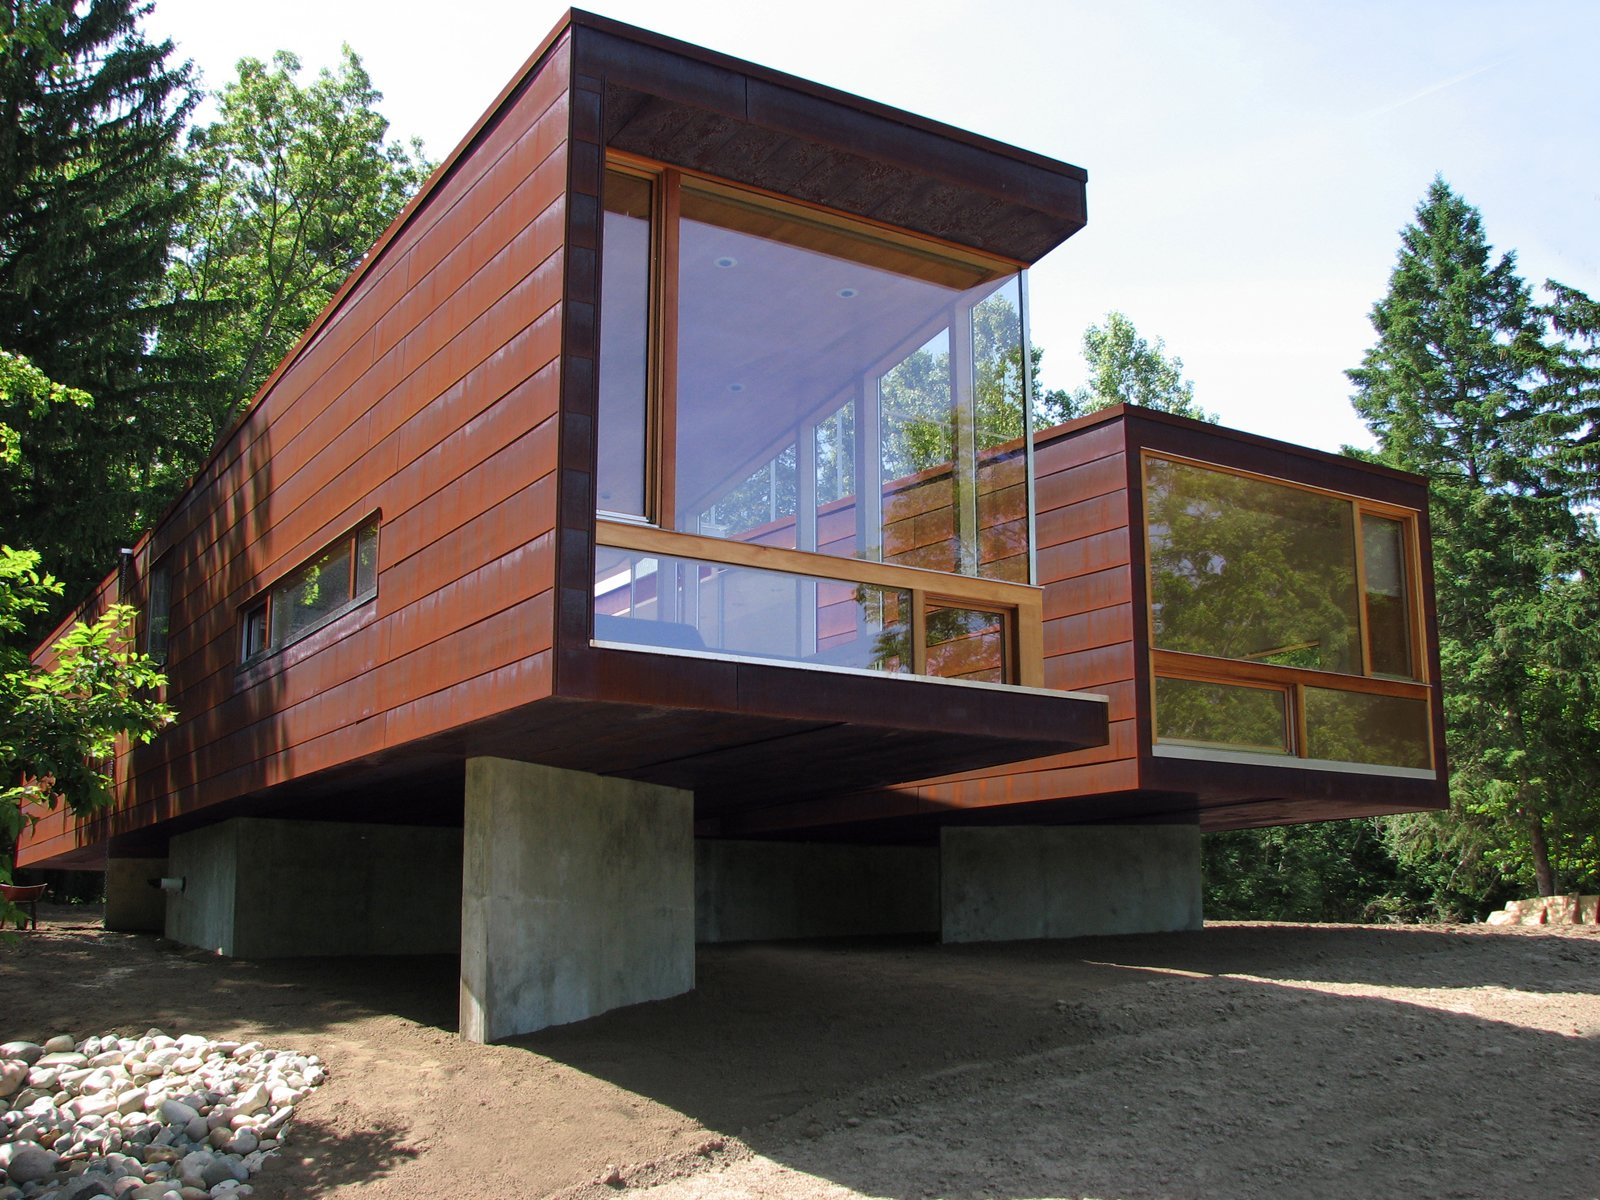 5 Marvelous Prefab Homes in Michigan - Dwell